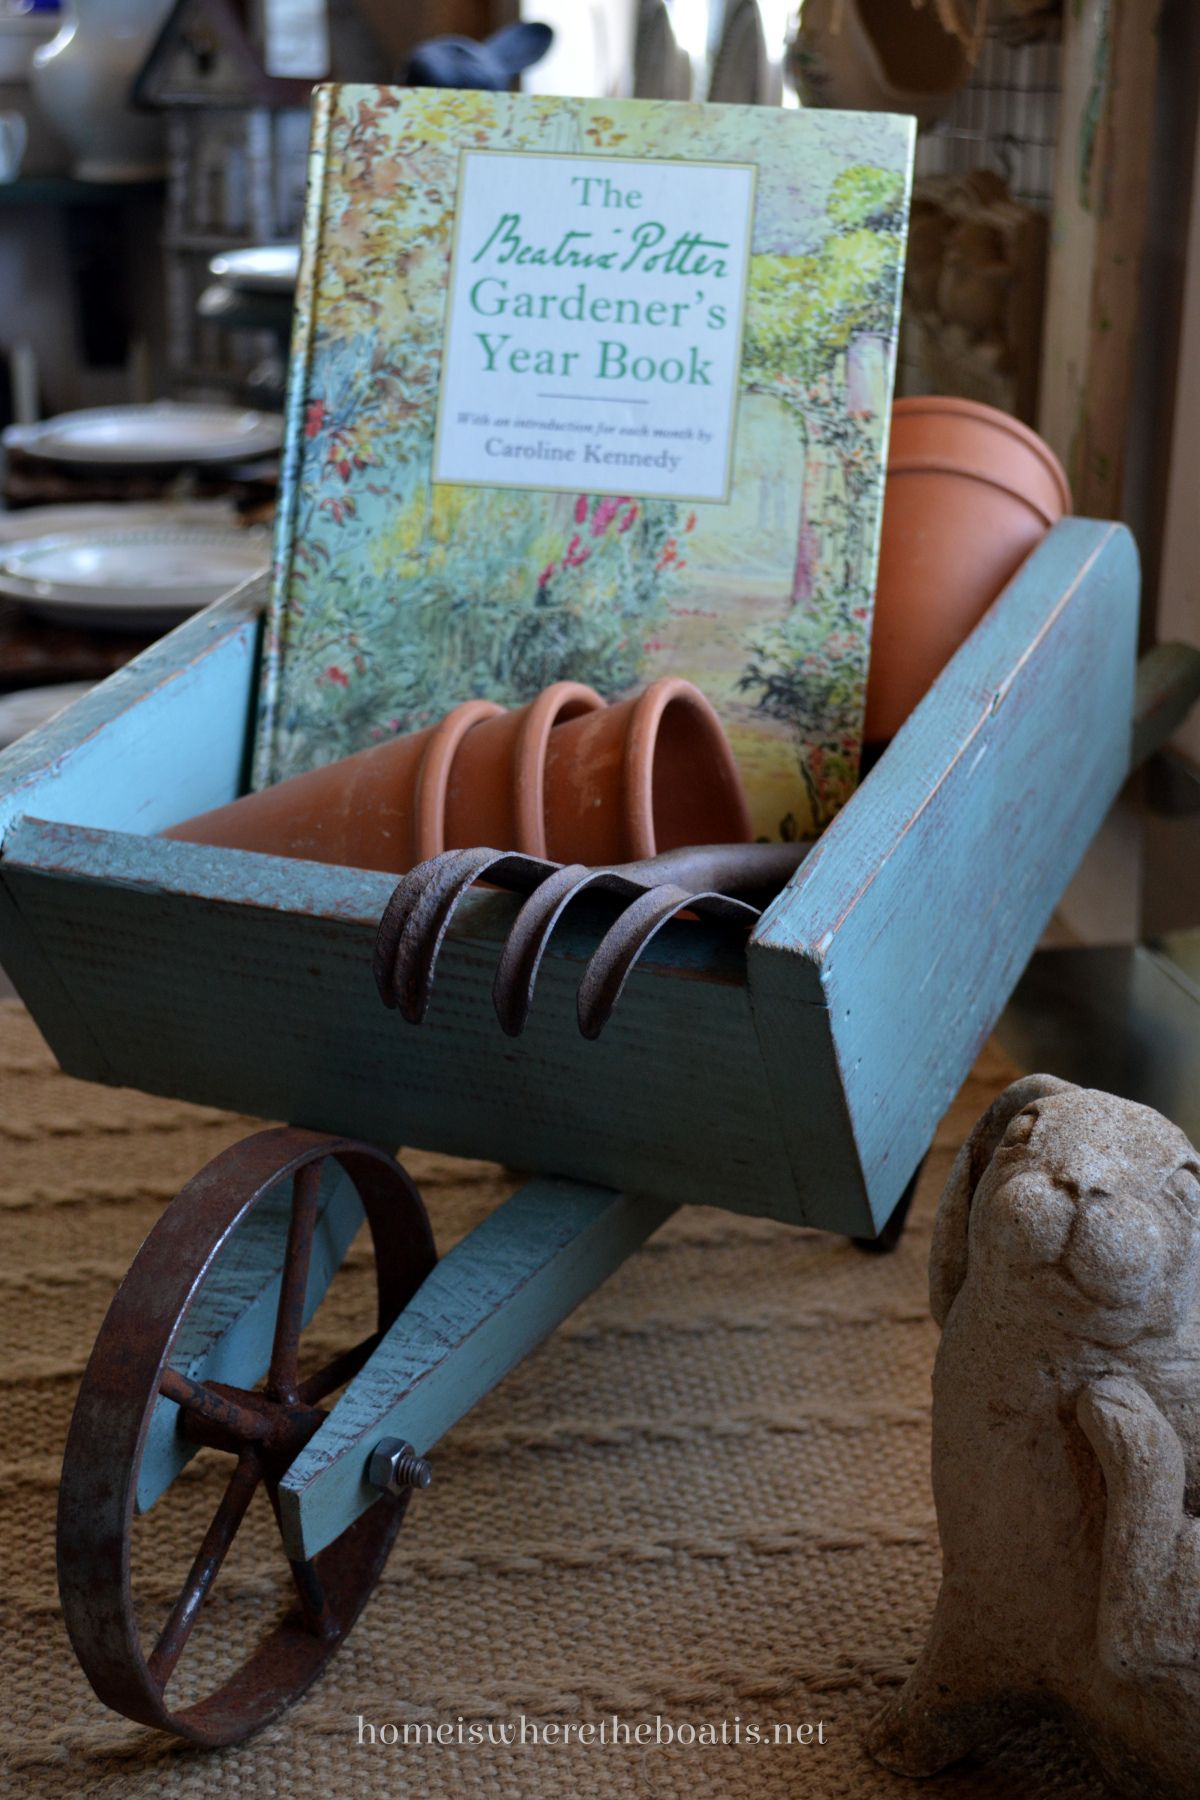 Beatrix Potter's Gardener's Yearbook